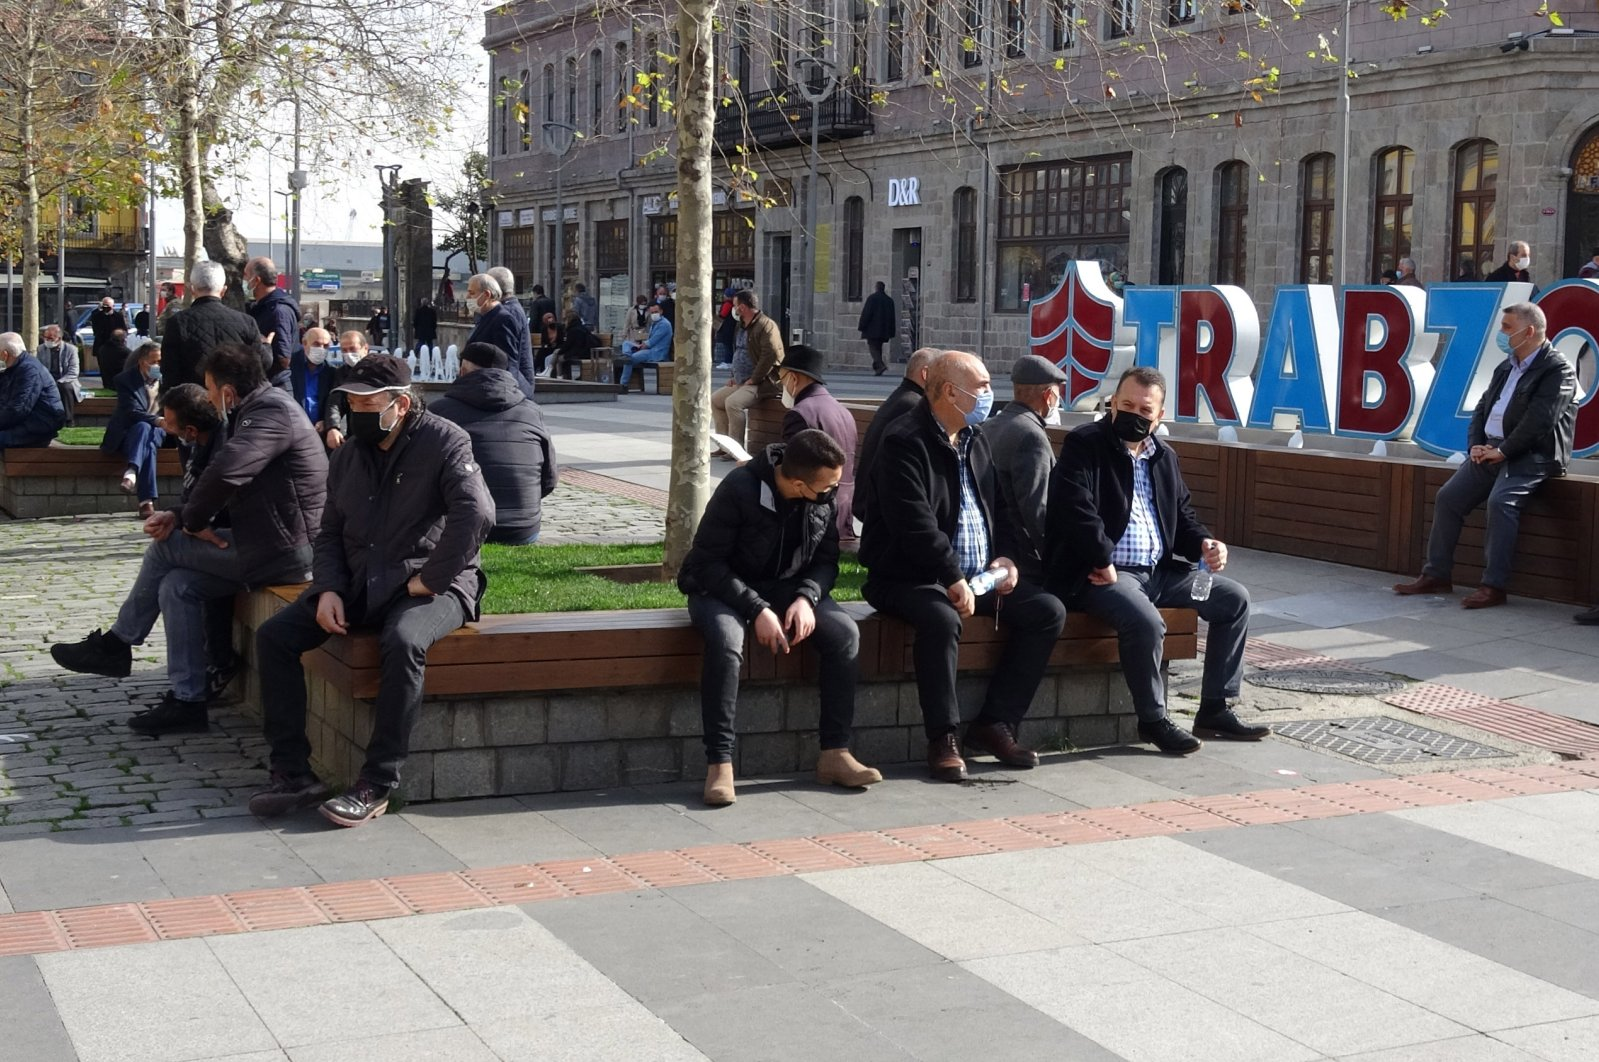 People wearing protective masks sit on benches, in Trabzon, northern Turkey, Feb. 16, 2021. (DHA PHOTO)